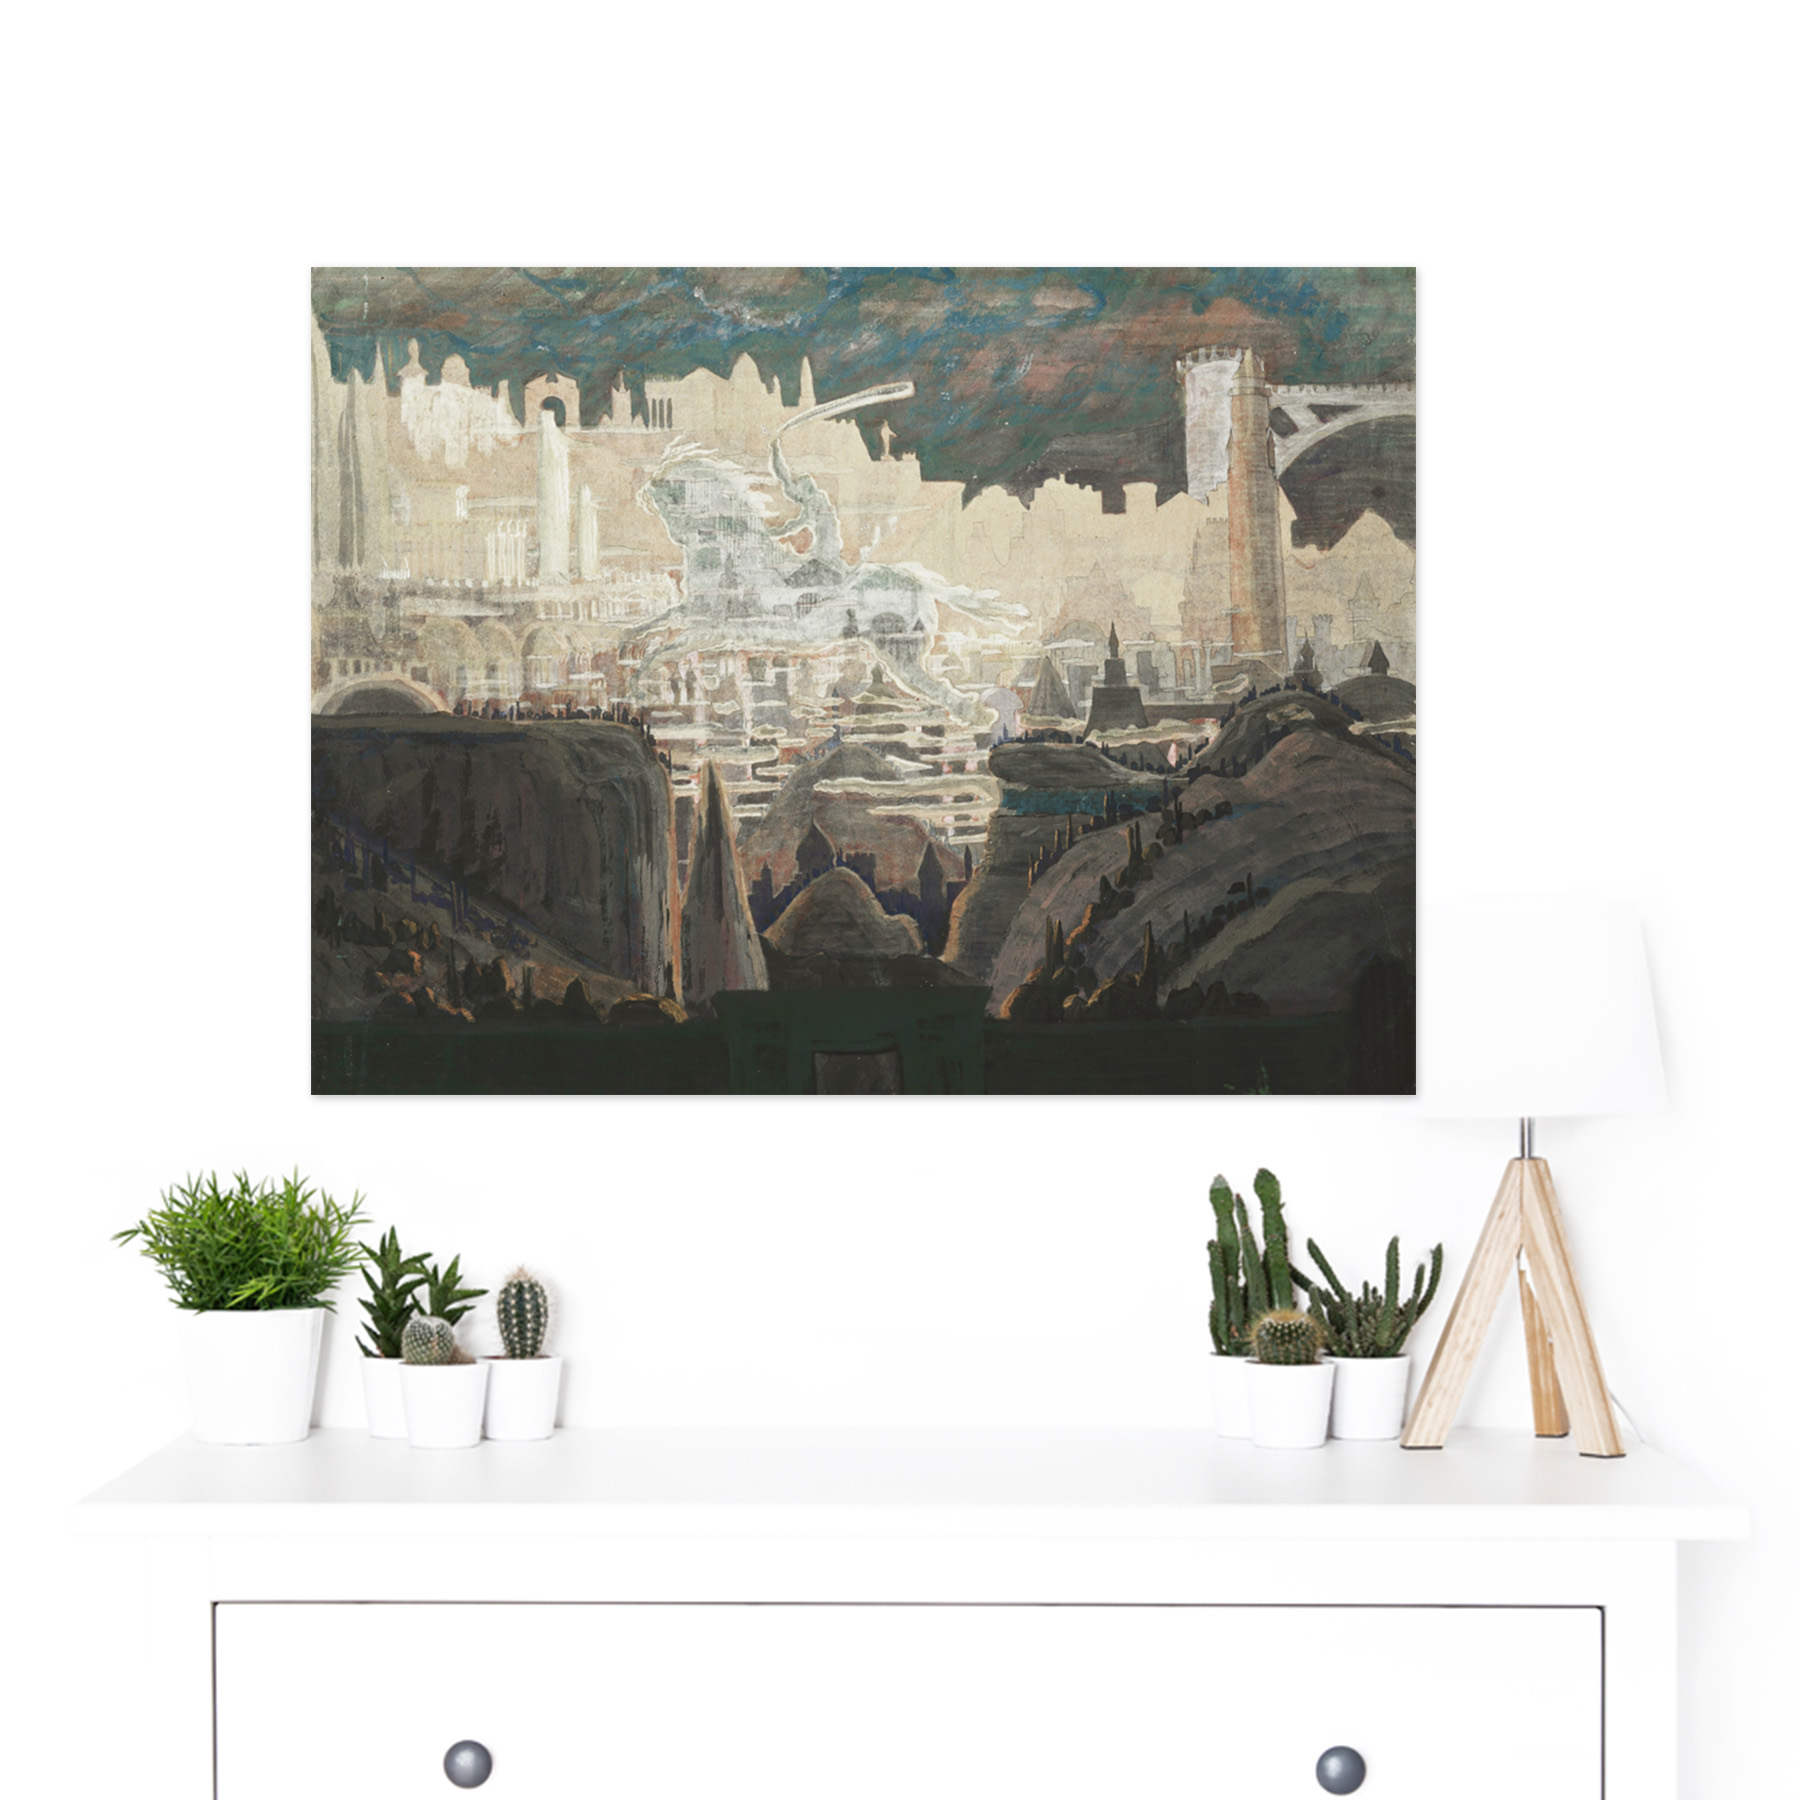 Ciurlionis-Prelude-The-Knight-Painting-Large-Framed-Art-Print thumbnail 3